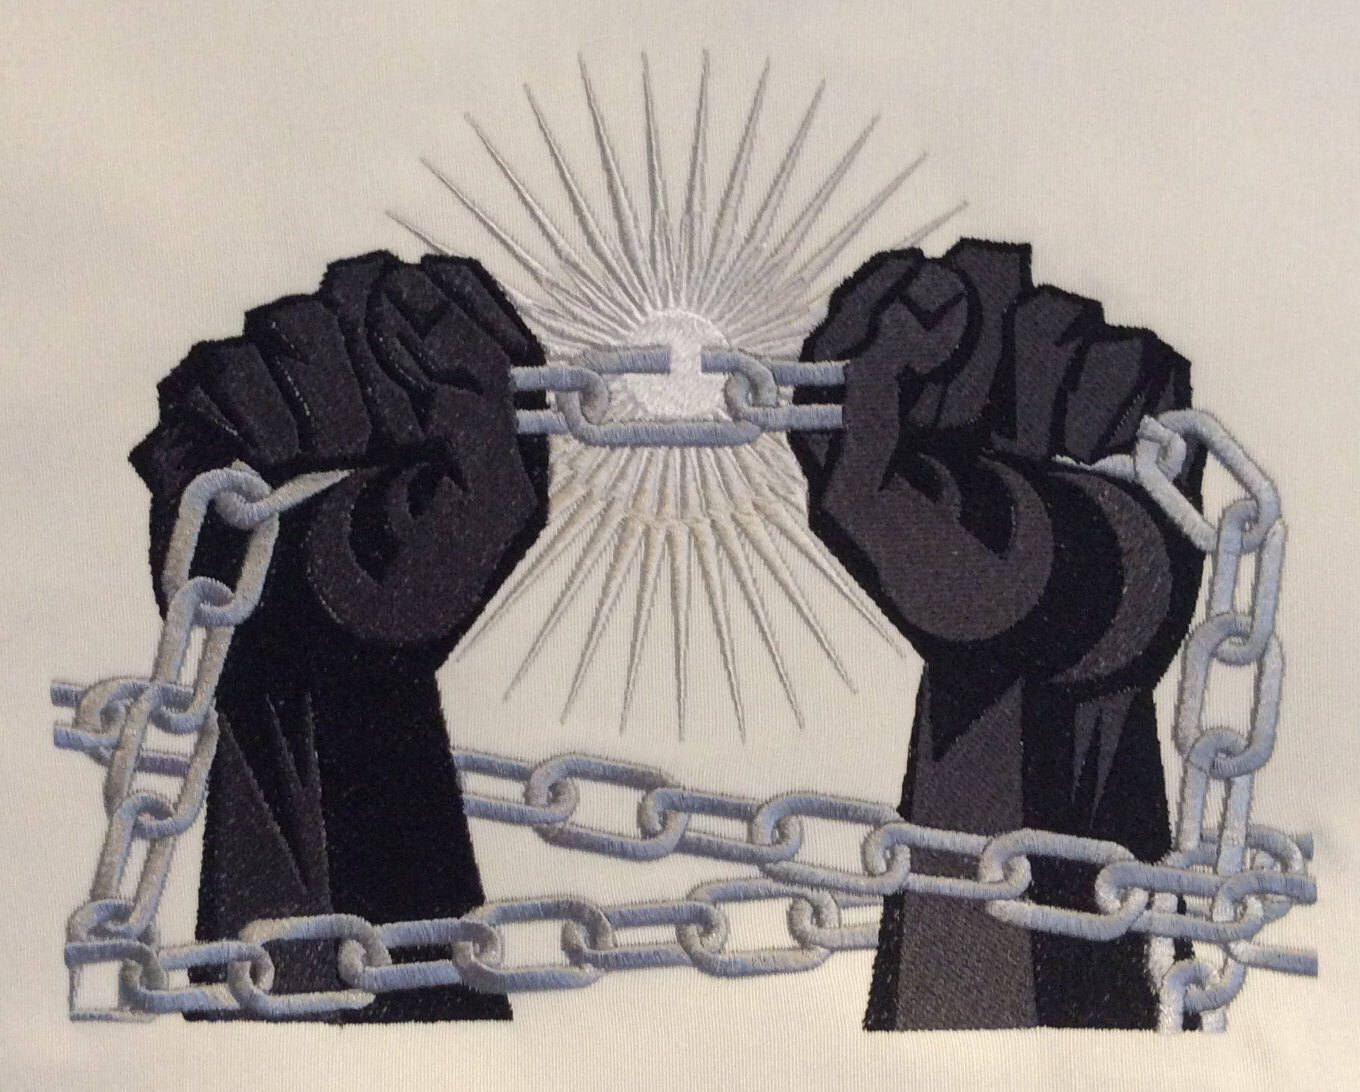 Broken chains break the chains that hold you instant